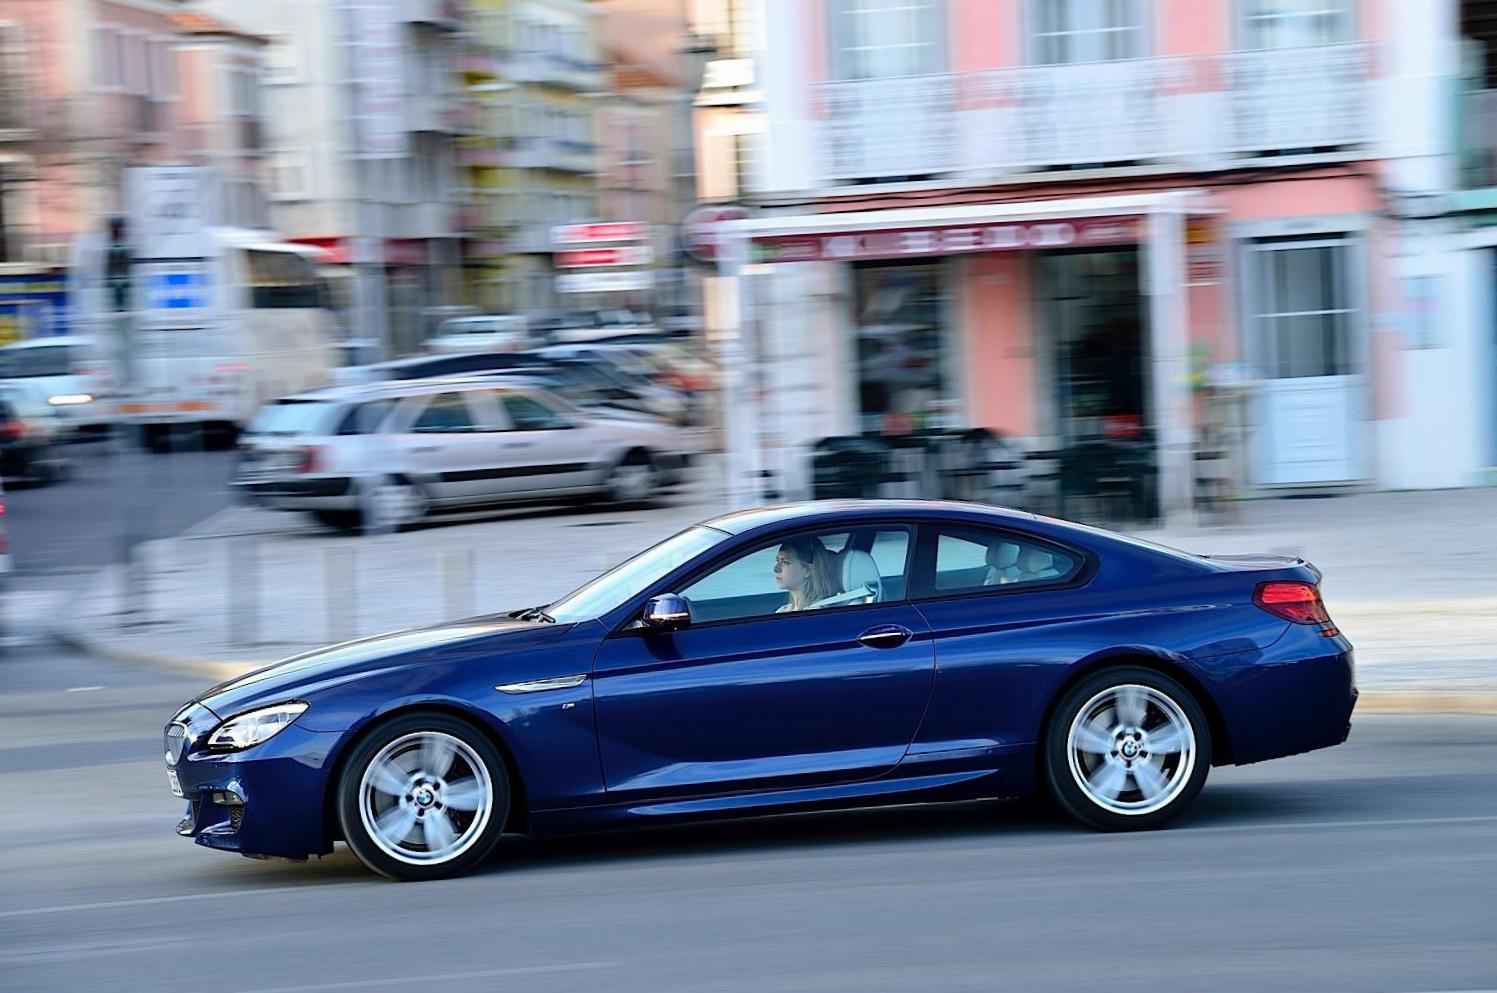 6 Series Coupe (F13) BMW concept hatchback